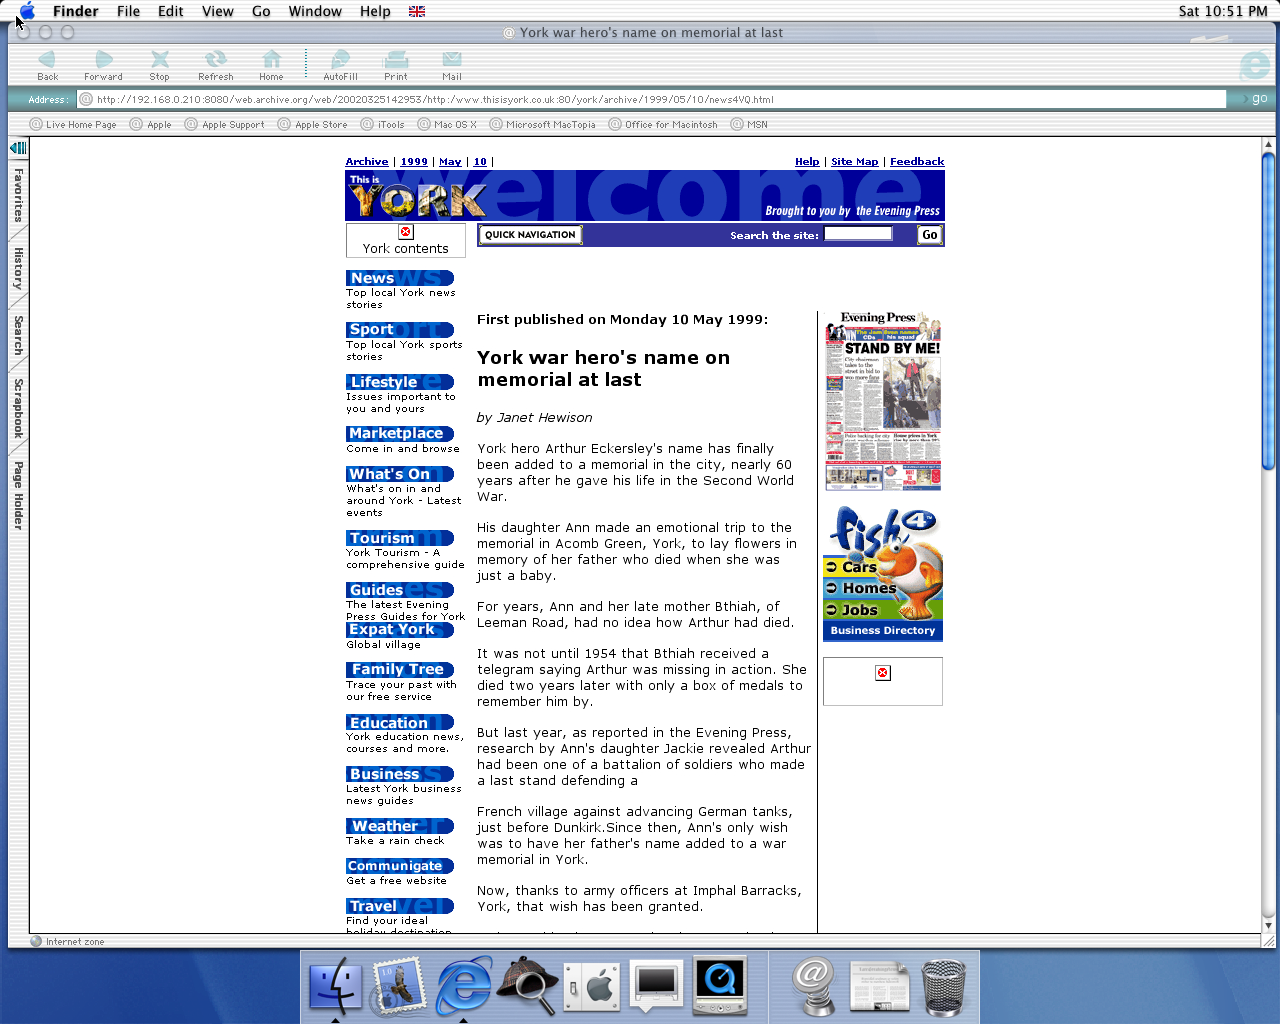 OS X 10.0 PPC with Microsoft Internet Explorer 5.1 for Mac Preview displaying a page from York Press archived at March 25, 2002 at 14:29:53